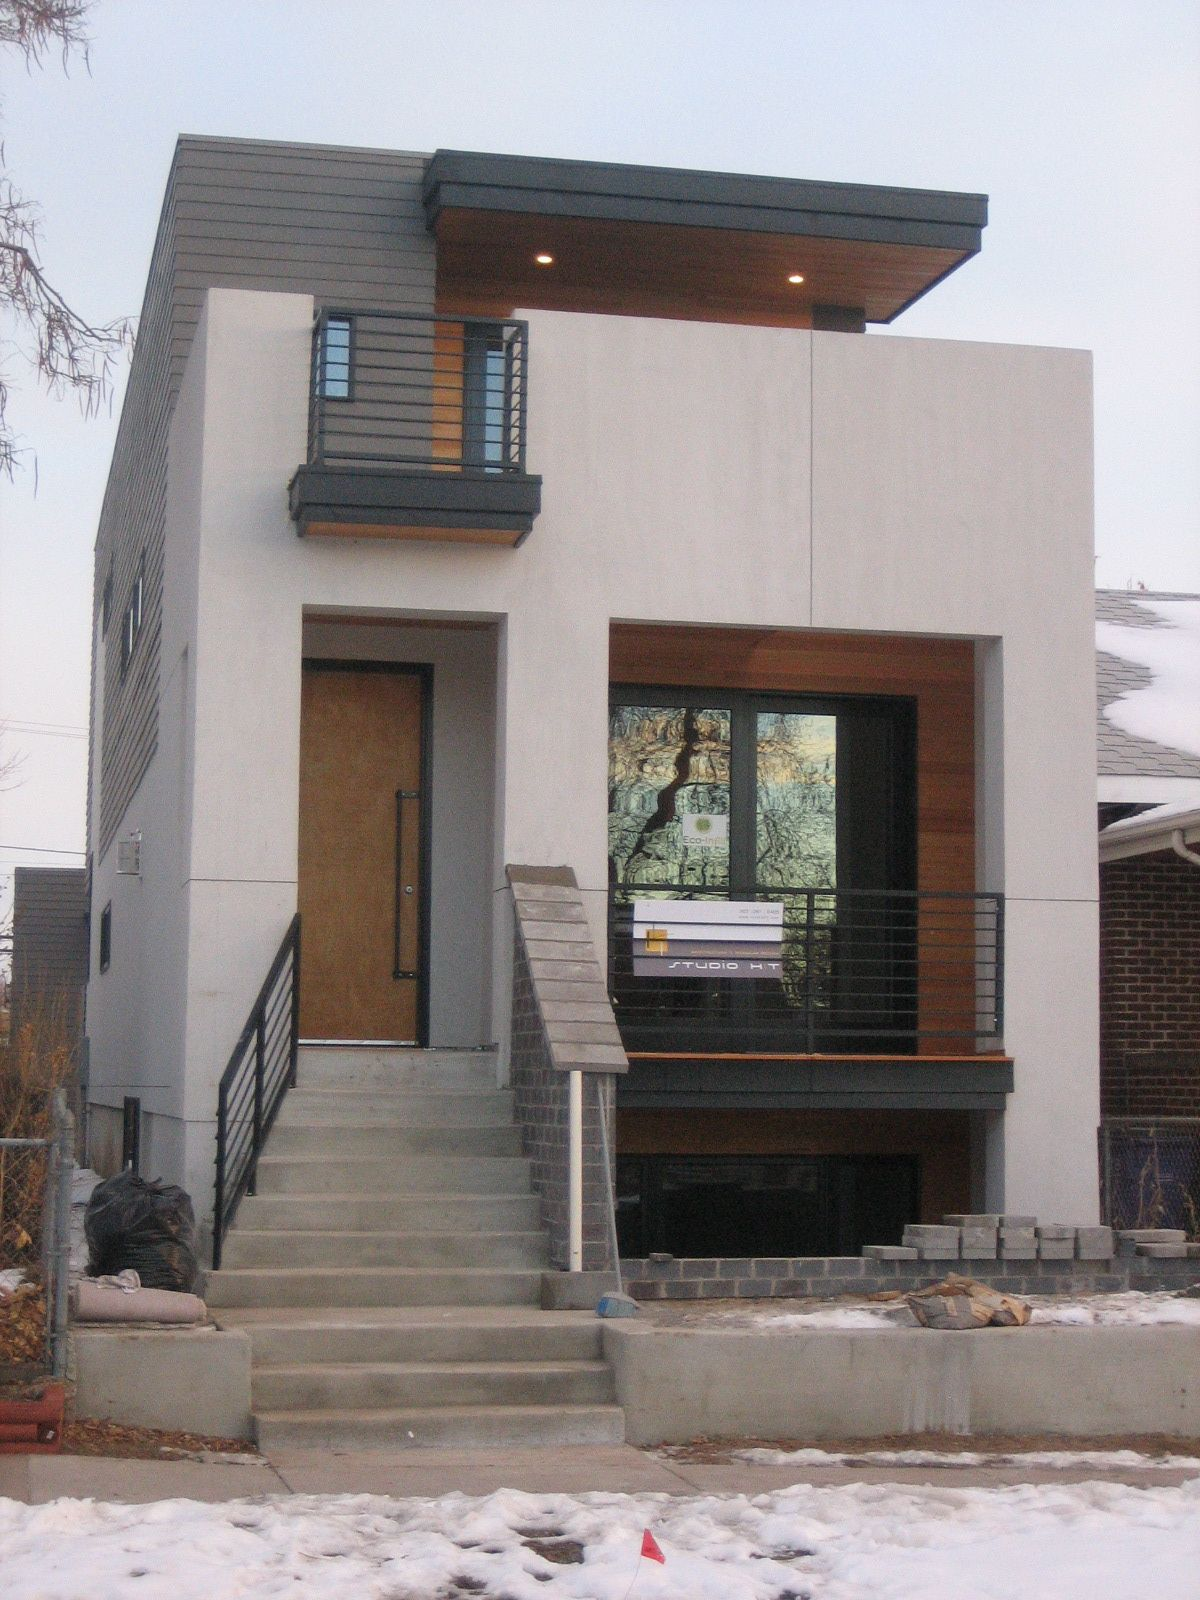 House design half cement - The Astounding Modern Prefab House Design Awesome Small Prefabricated Homes With Simple Balcony Digital Imagery Above